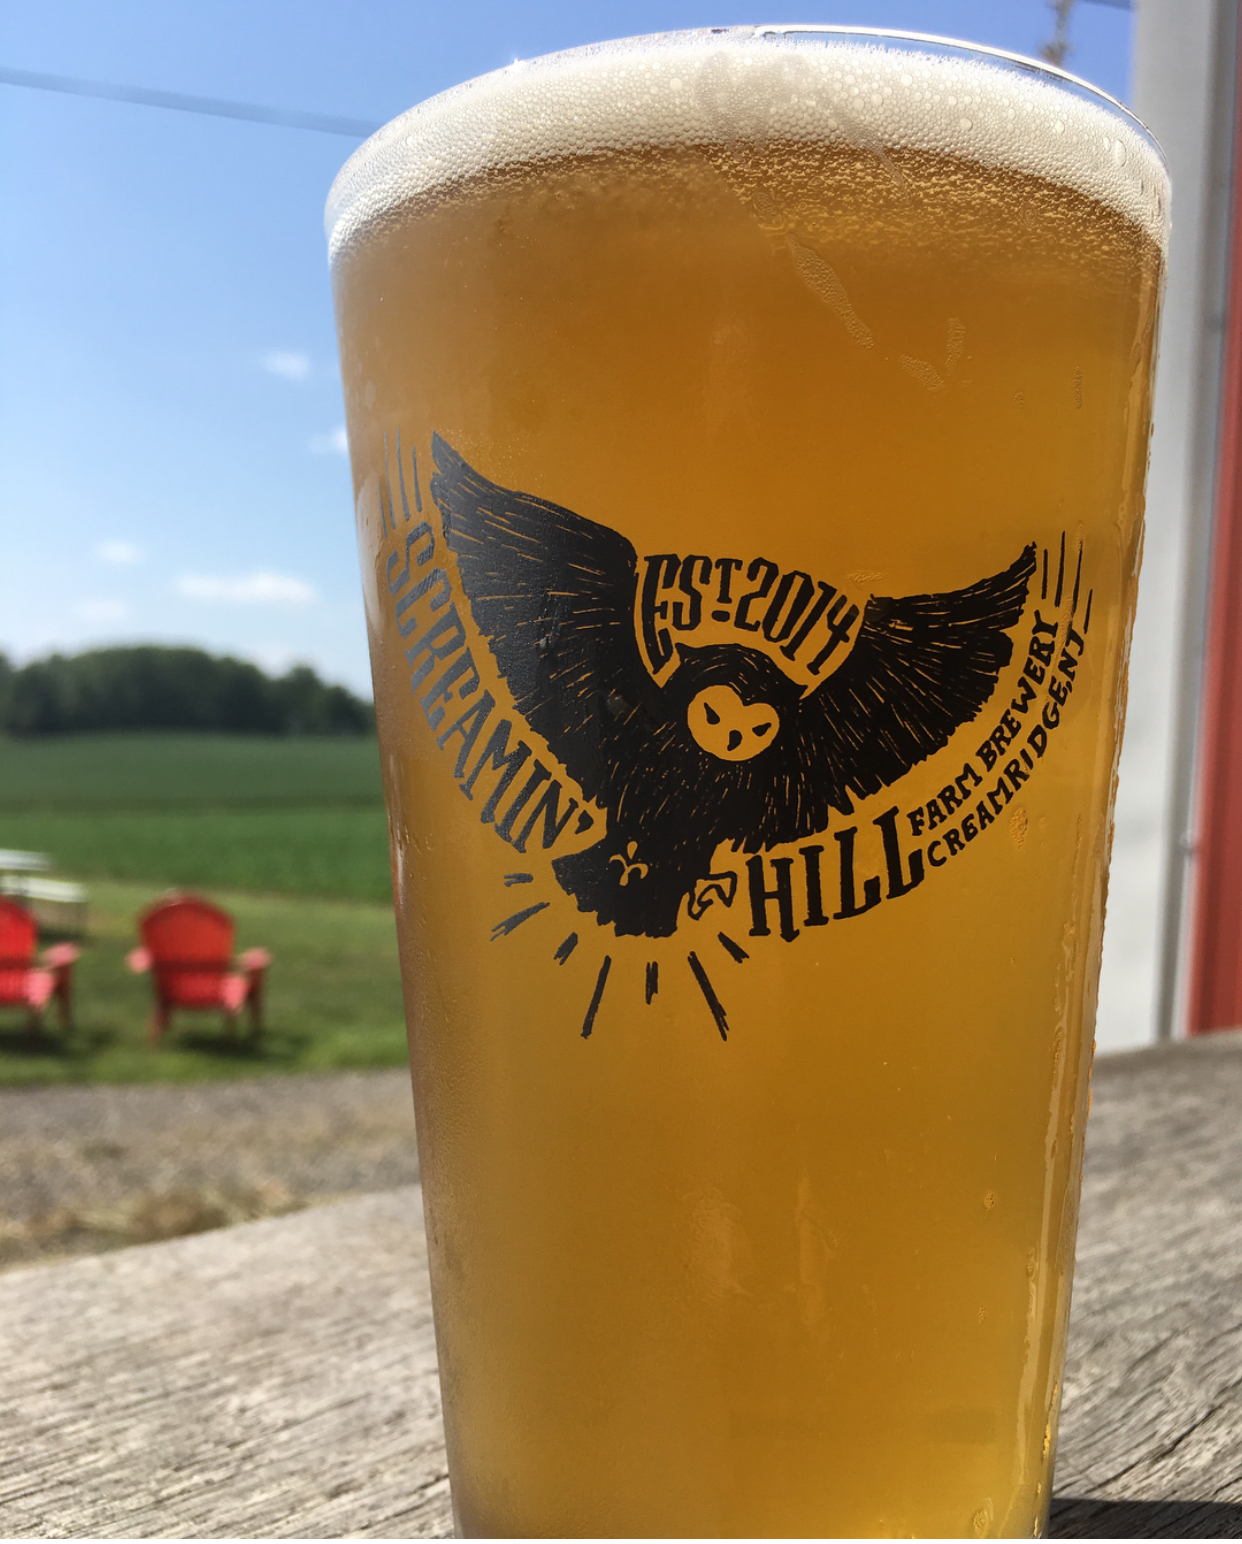 All Beers – Screamin' Hill Brewery